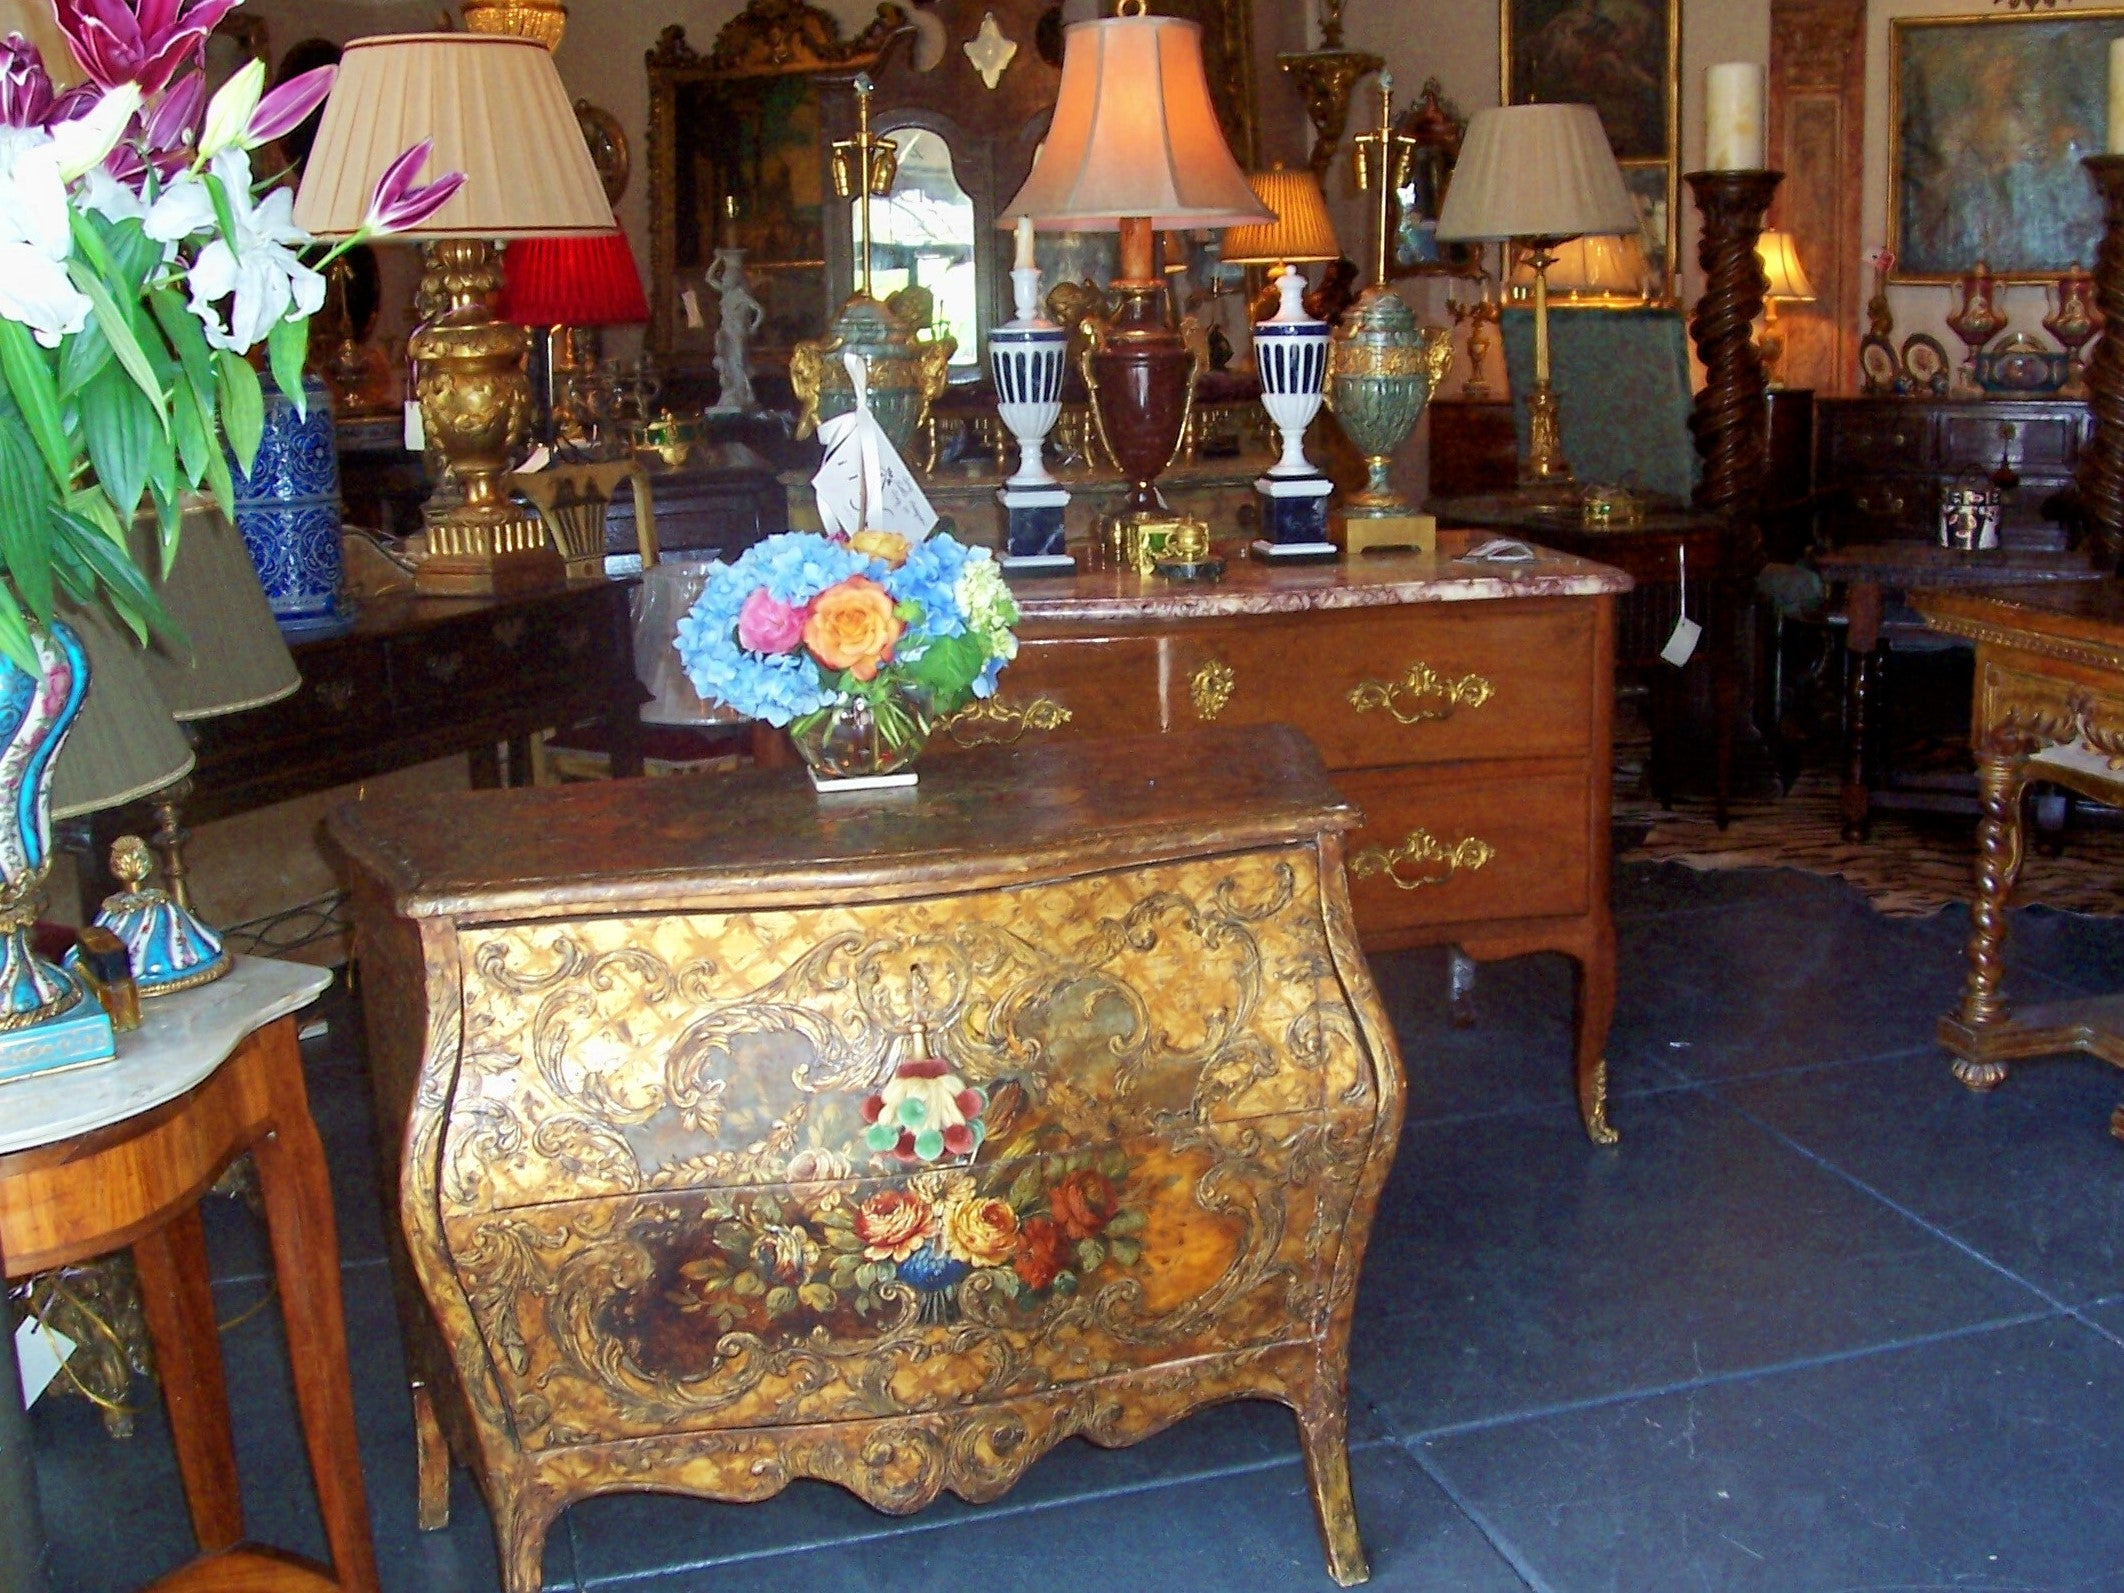 More About The Little Antique